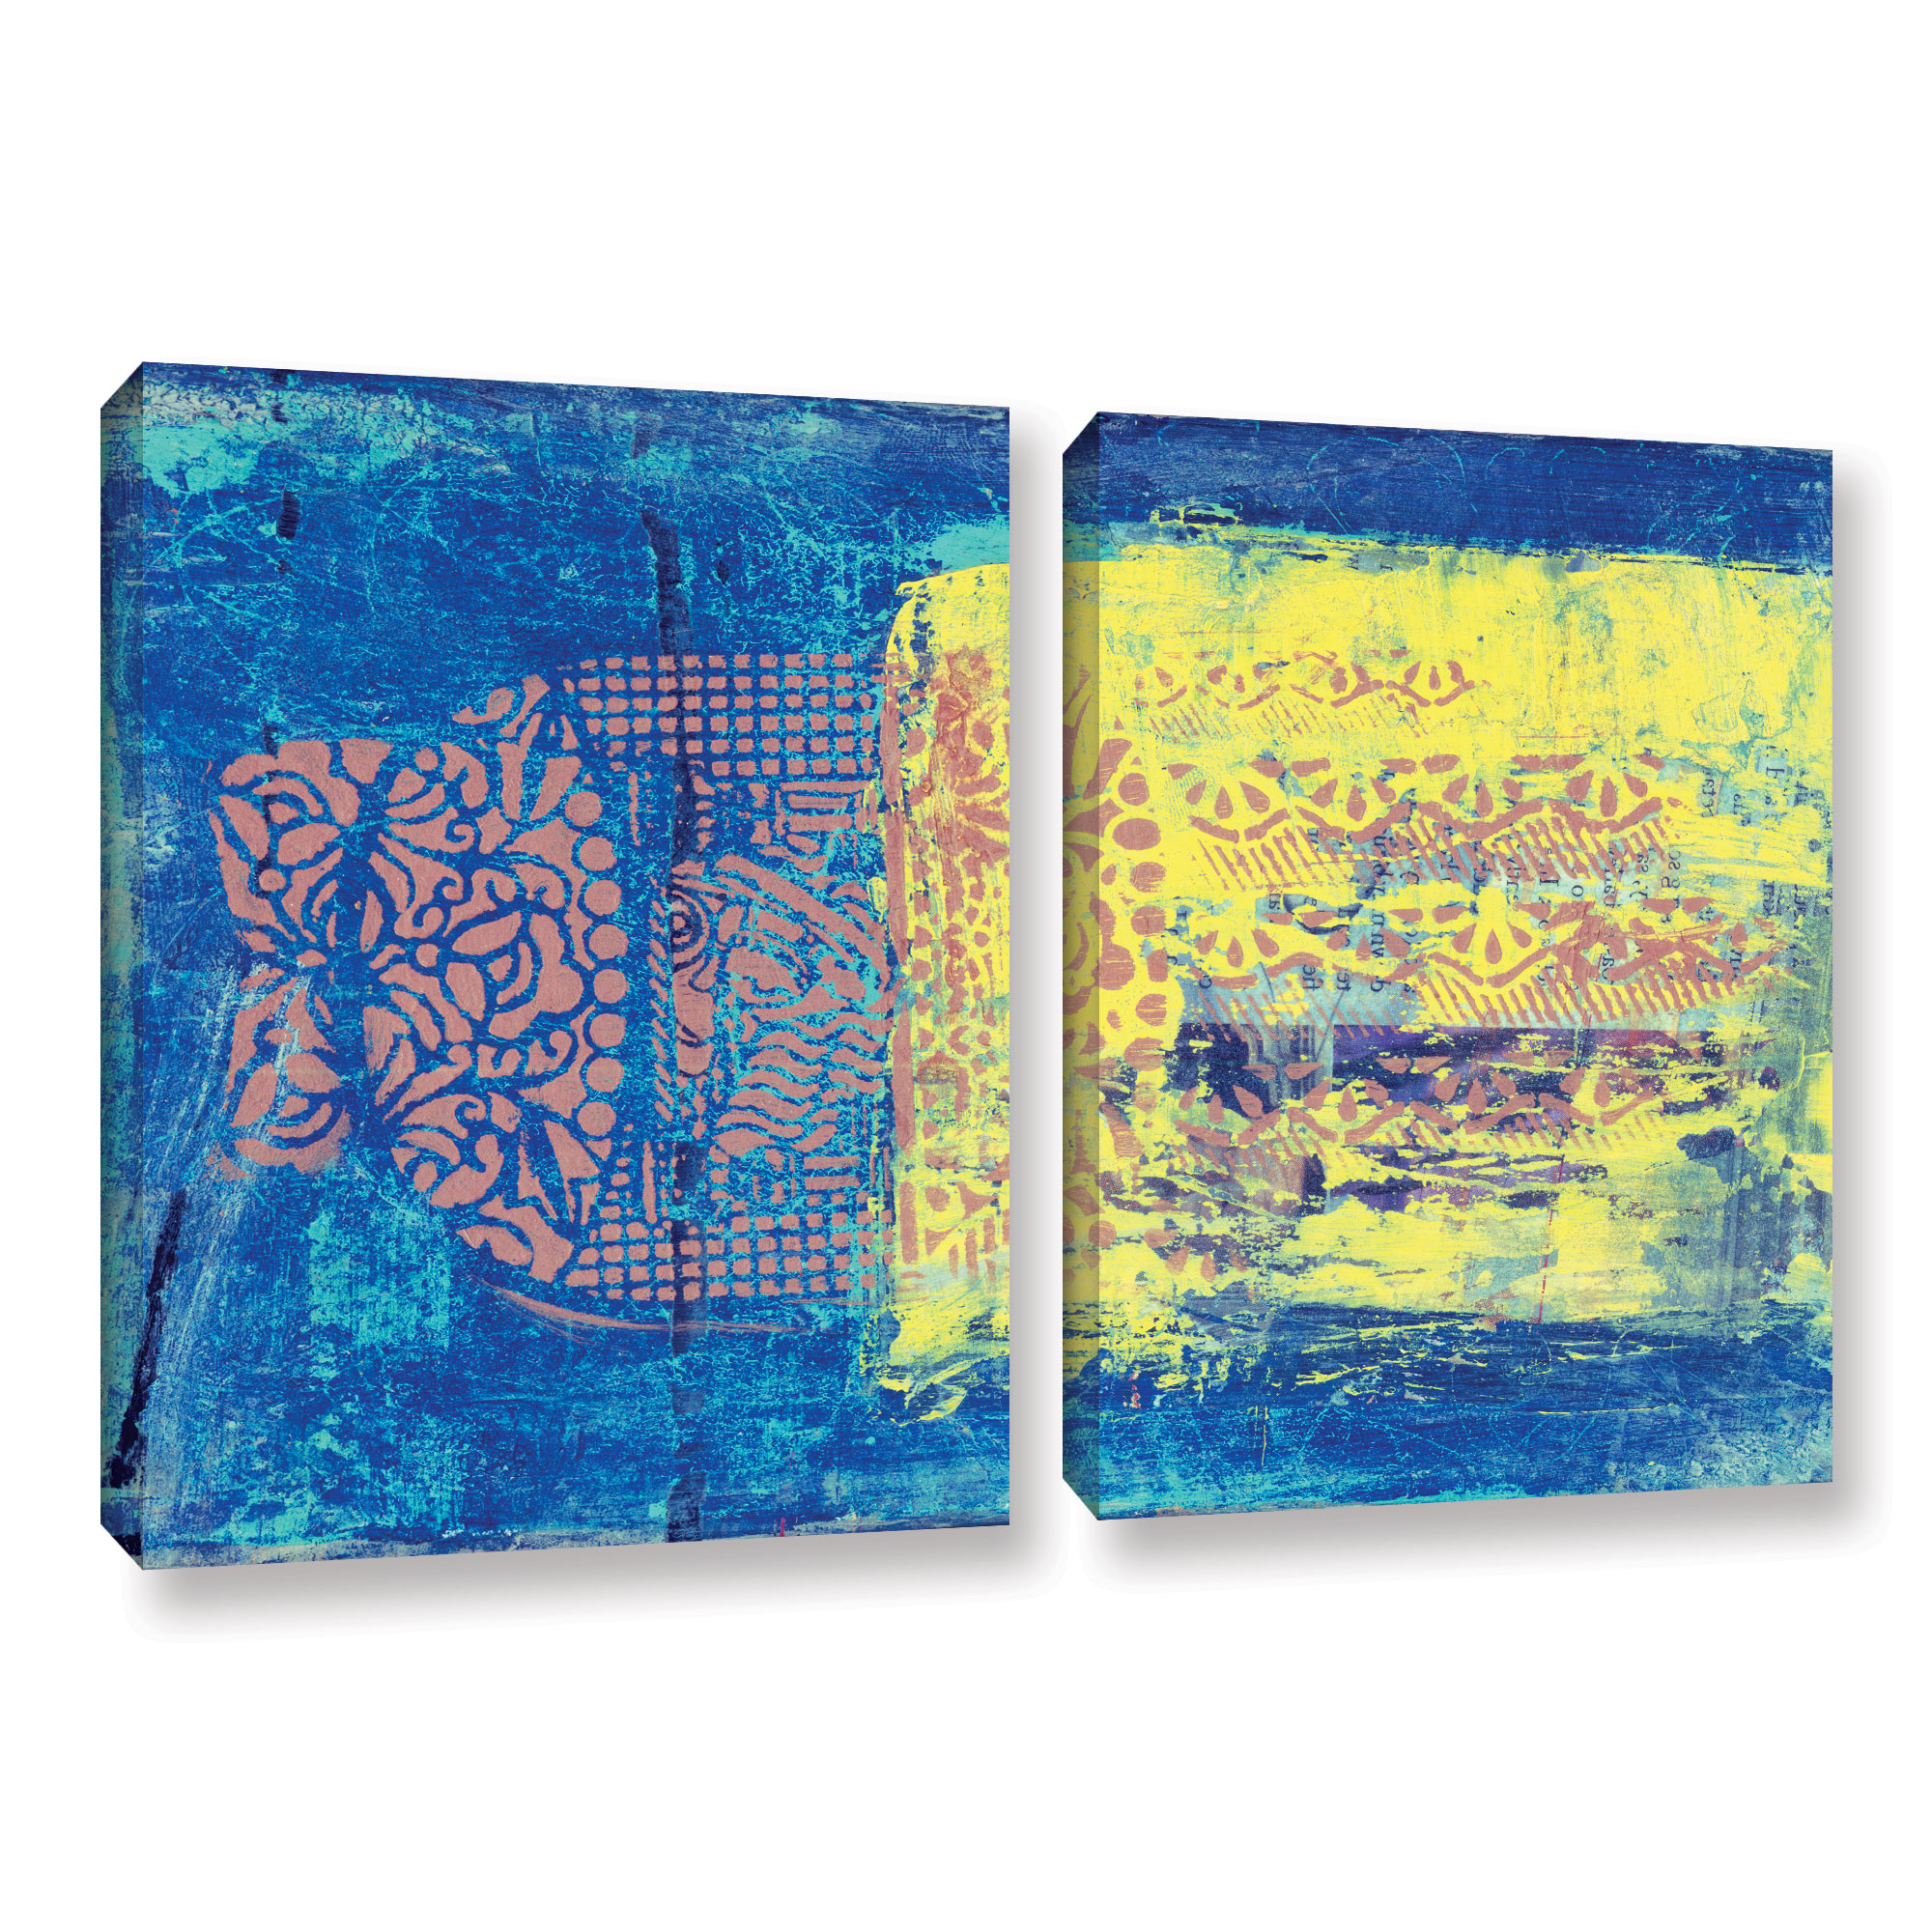 Blue With Stencils' Gallery wrapped Canvas Art Print by ArtWall